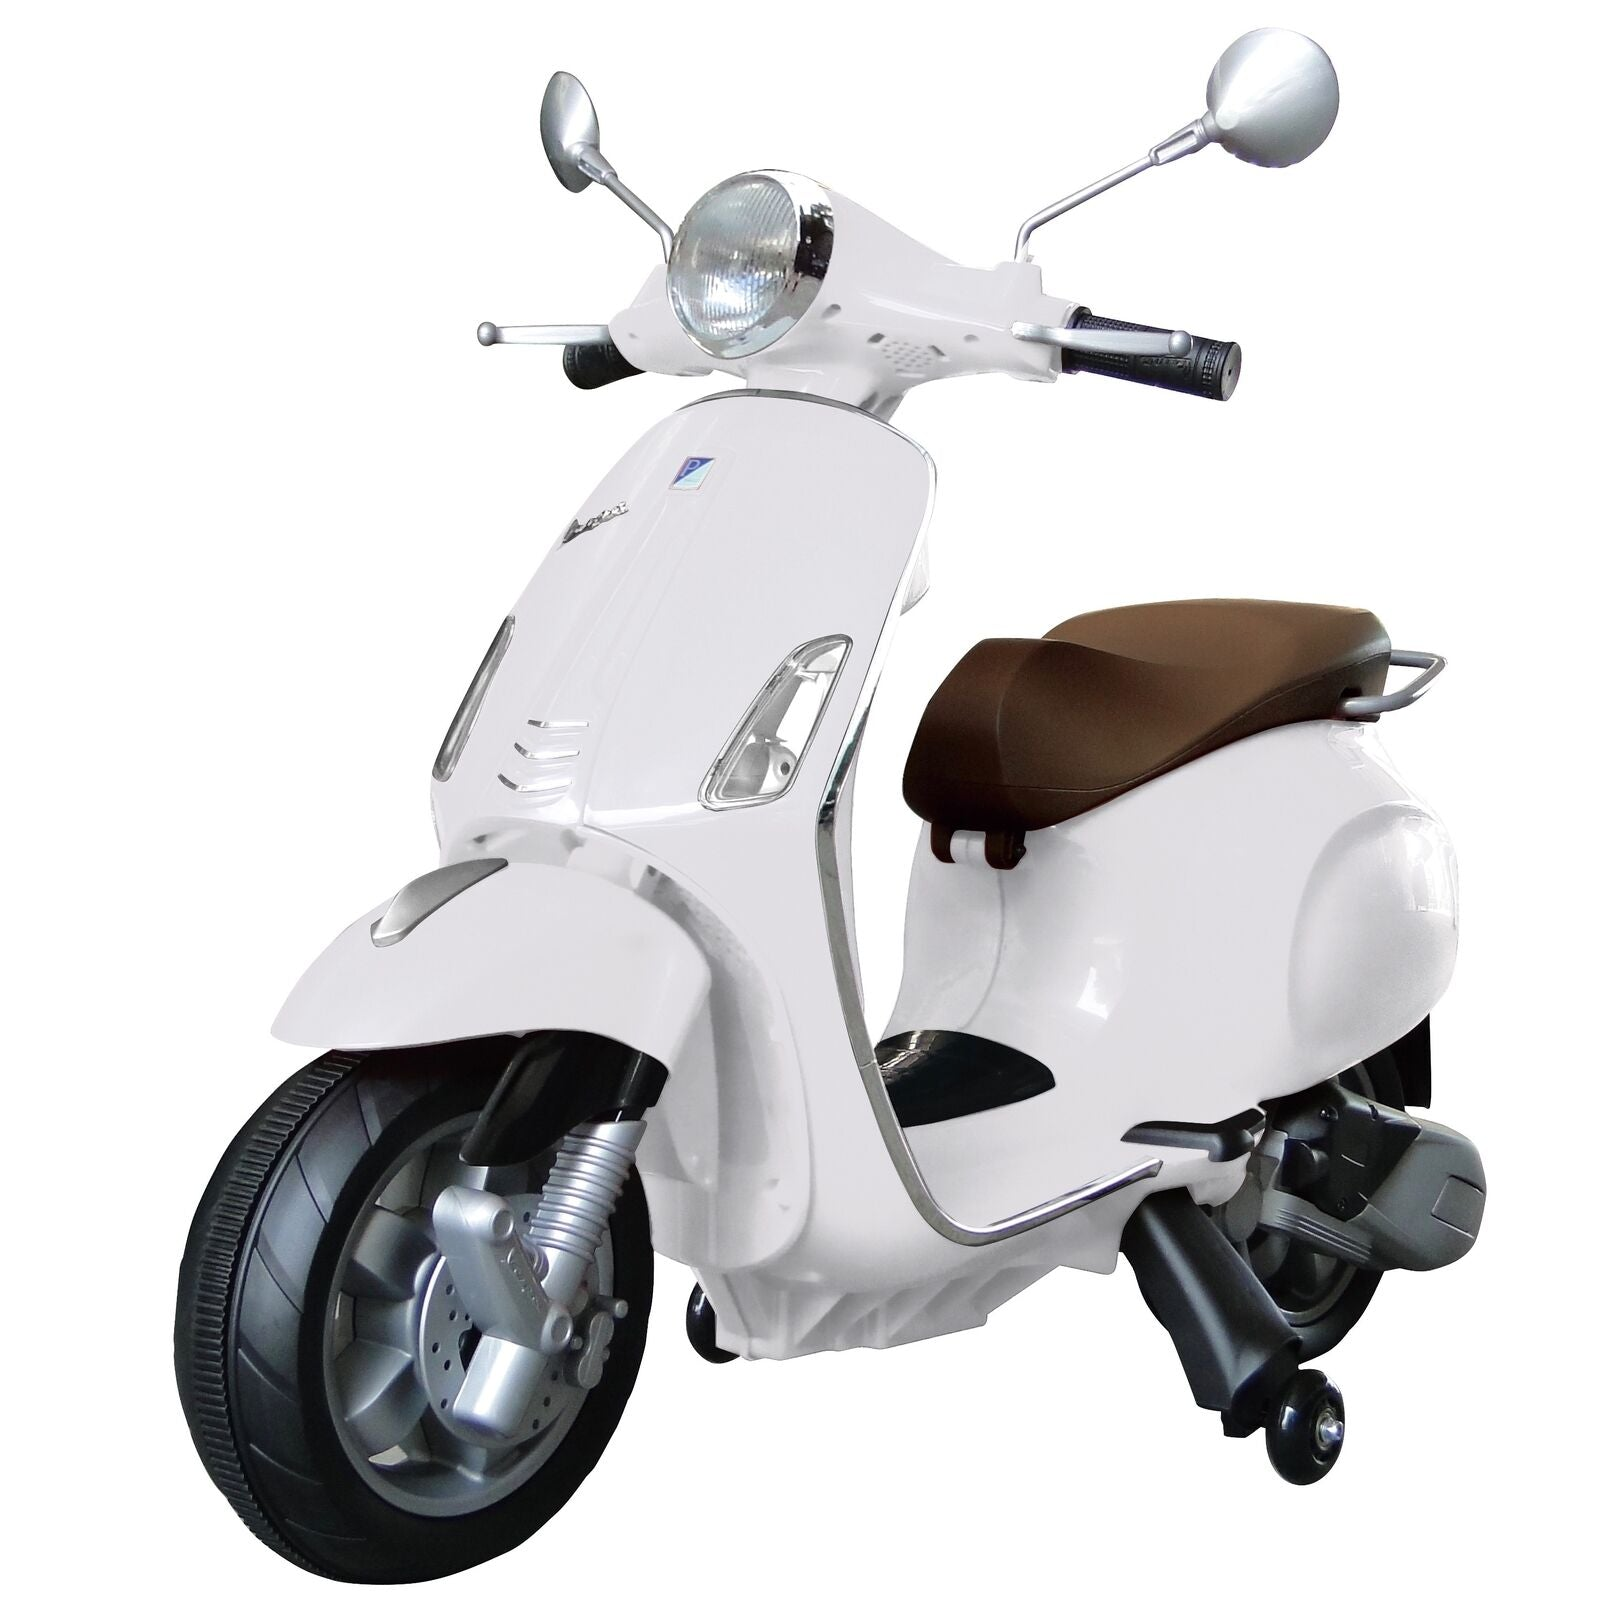 Vespa Primavera 12V Electric Ride On Kids Scooter Children Motorbike - White